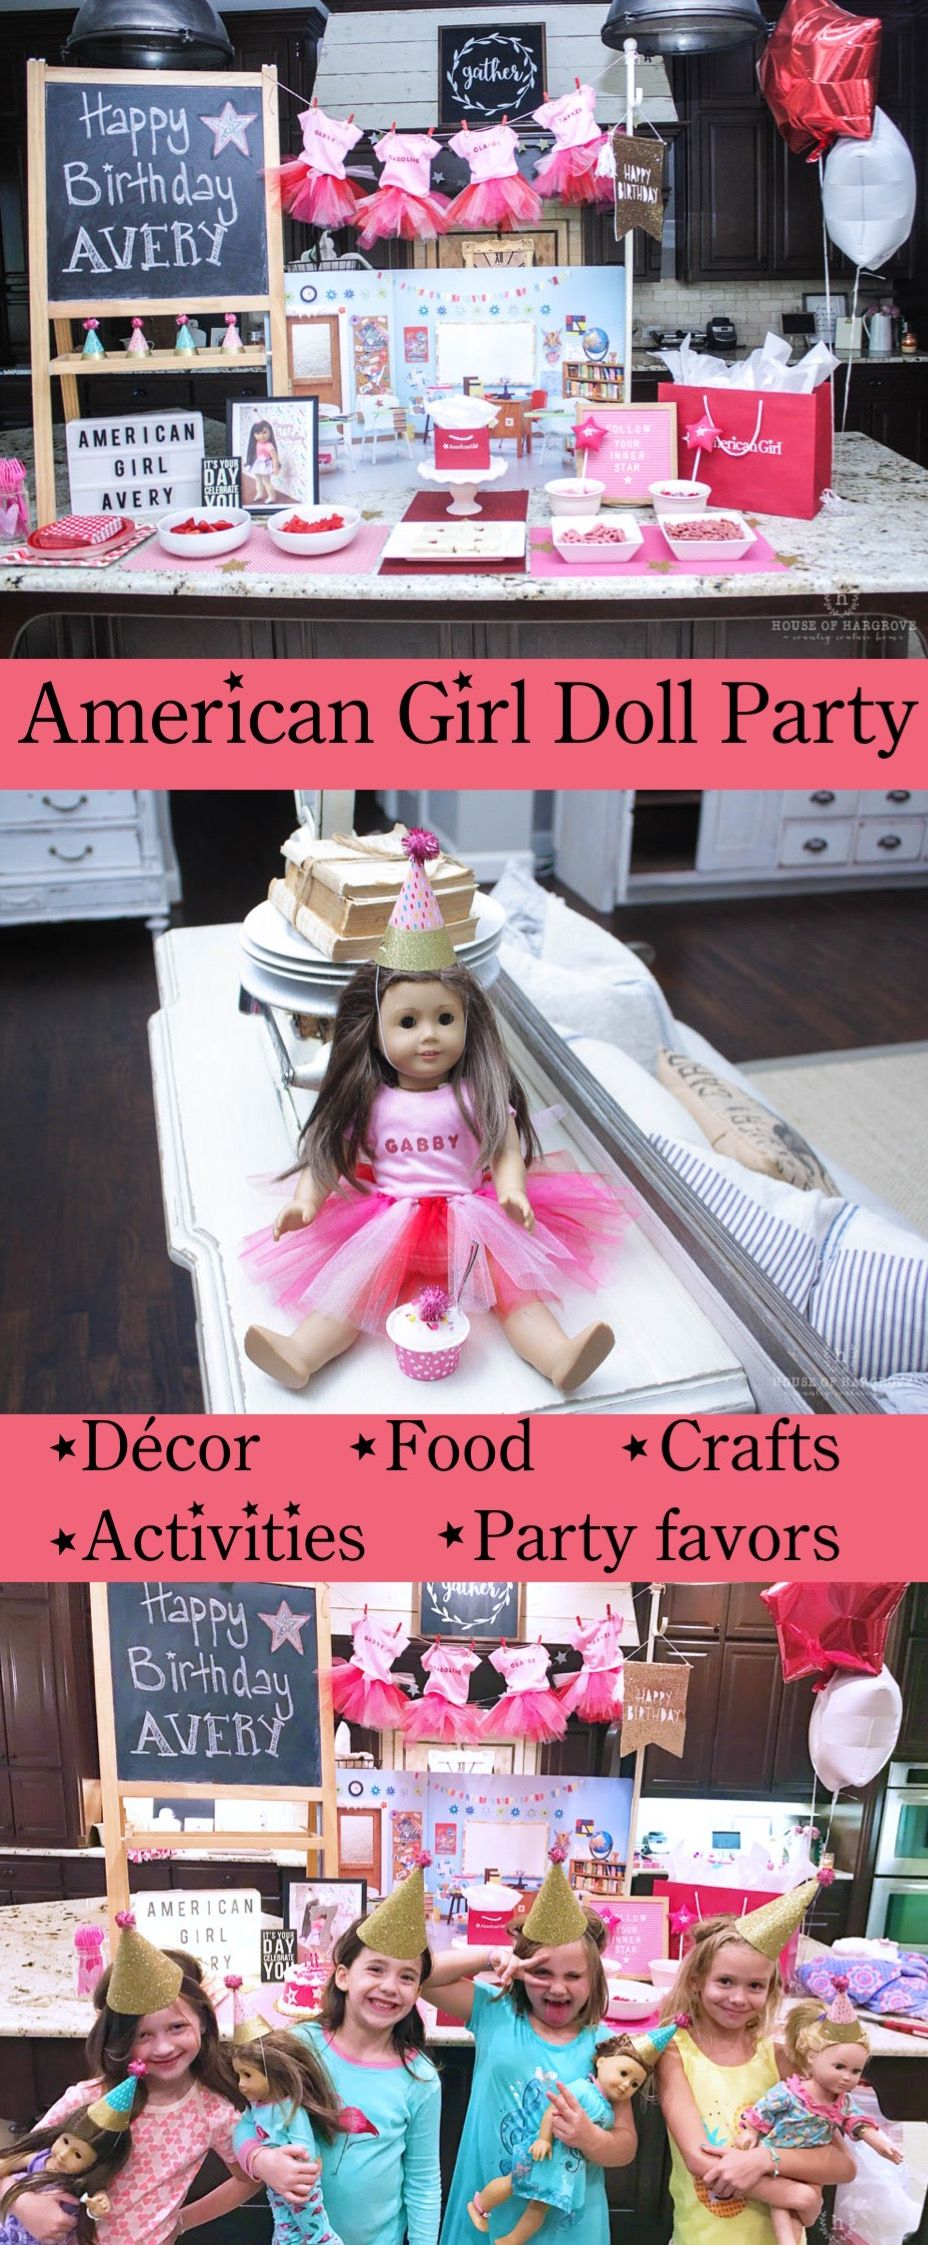 American Girl Doll Birthday Party: Avery's 7th Birthday - House of Hargrove